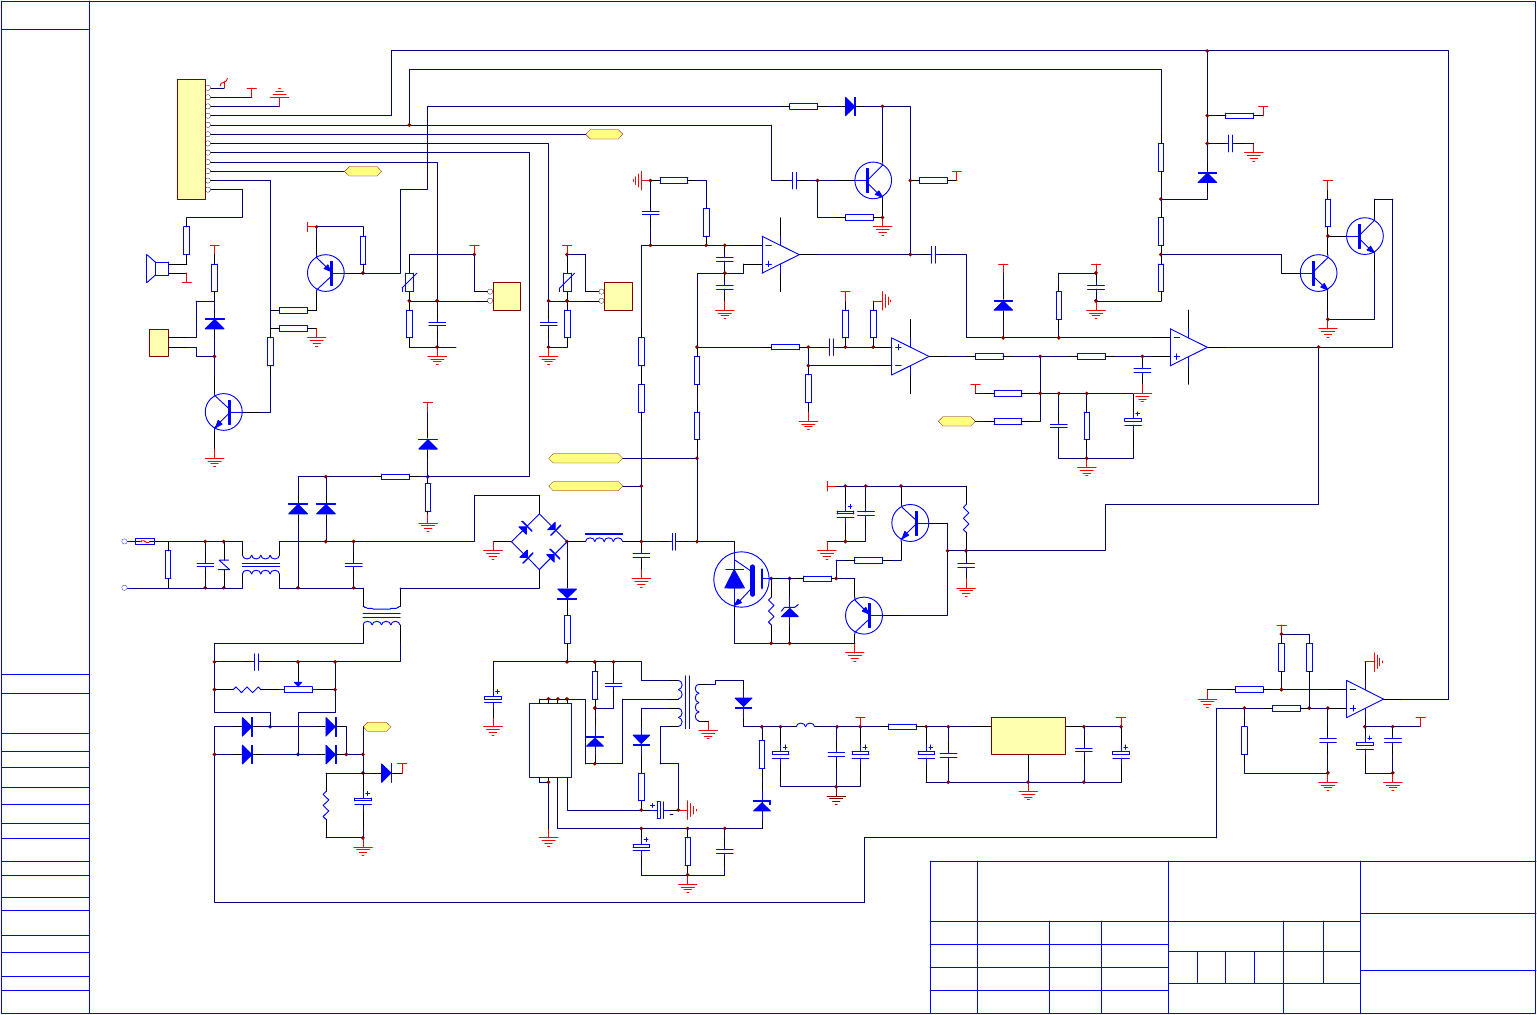 124 Induction Cooker Schematics Protel Schematic Guang Dong Xinbao Heater Diagram Free Download Wiring Electrical Appliances Holdings Co Ltd